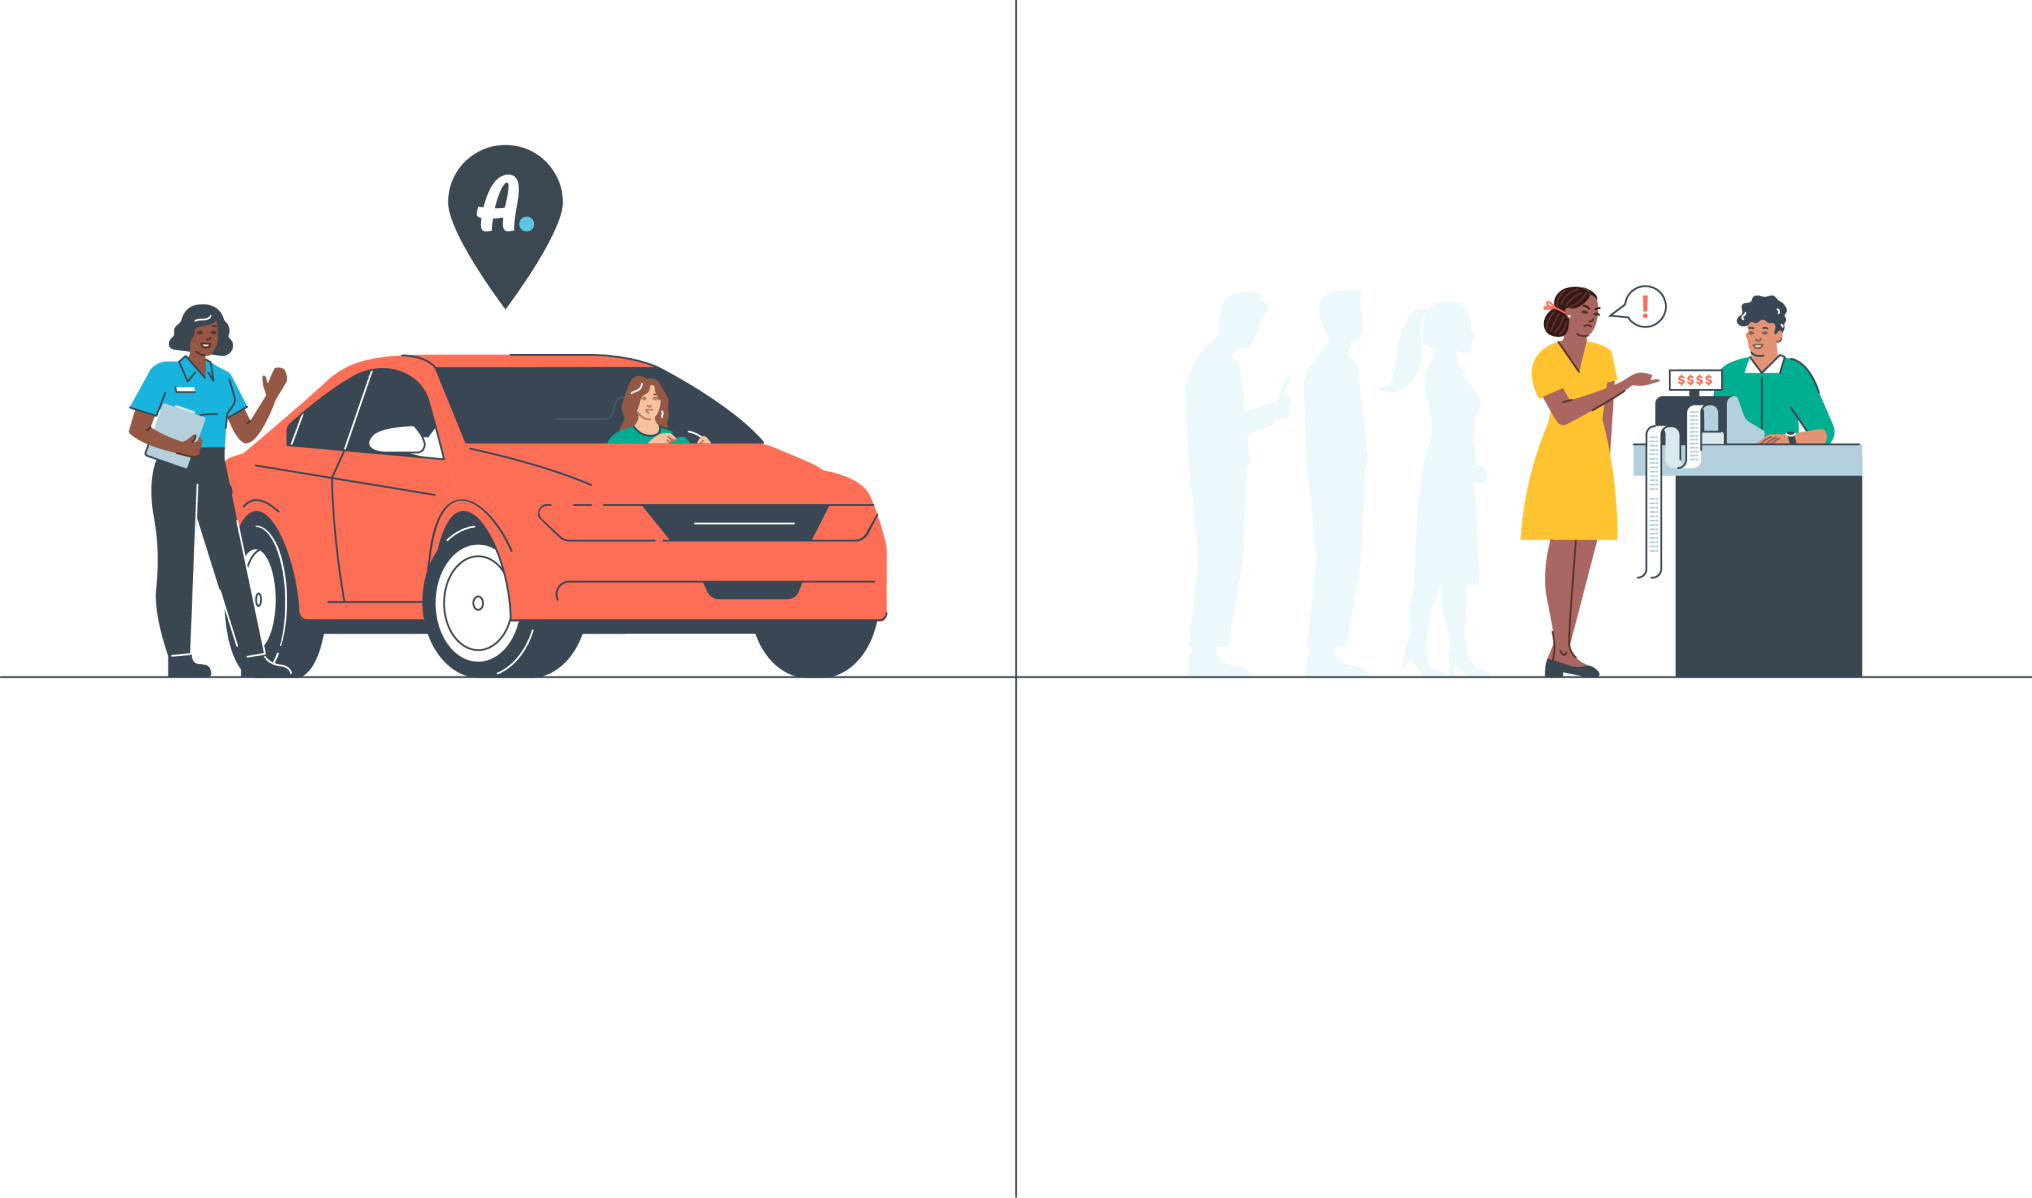 Graphic of a red car with a person entering, across from people waiting in line at a counter.